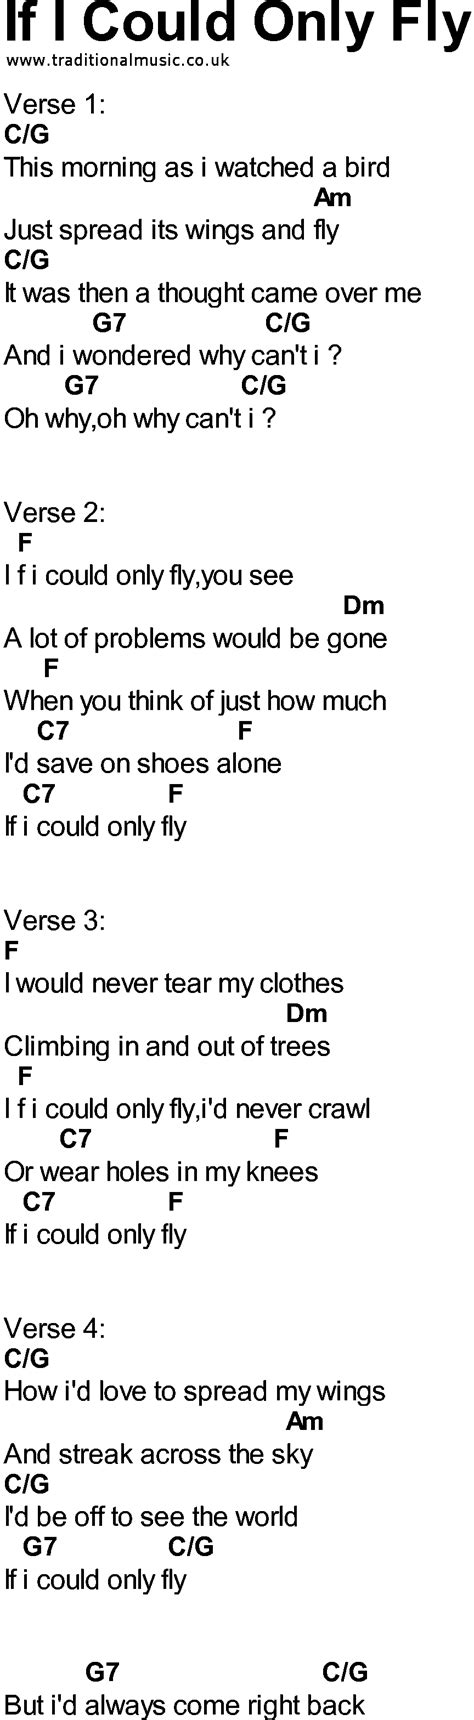 If Only I Could Fly if i could only fly